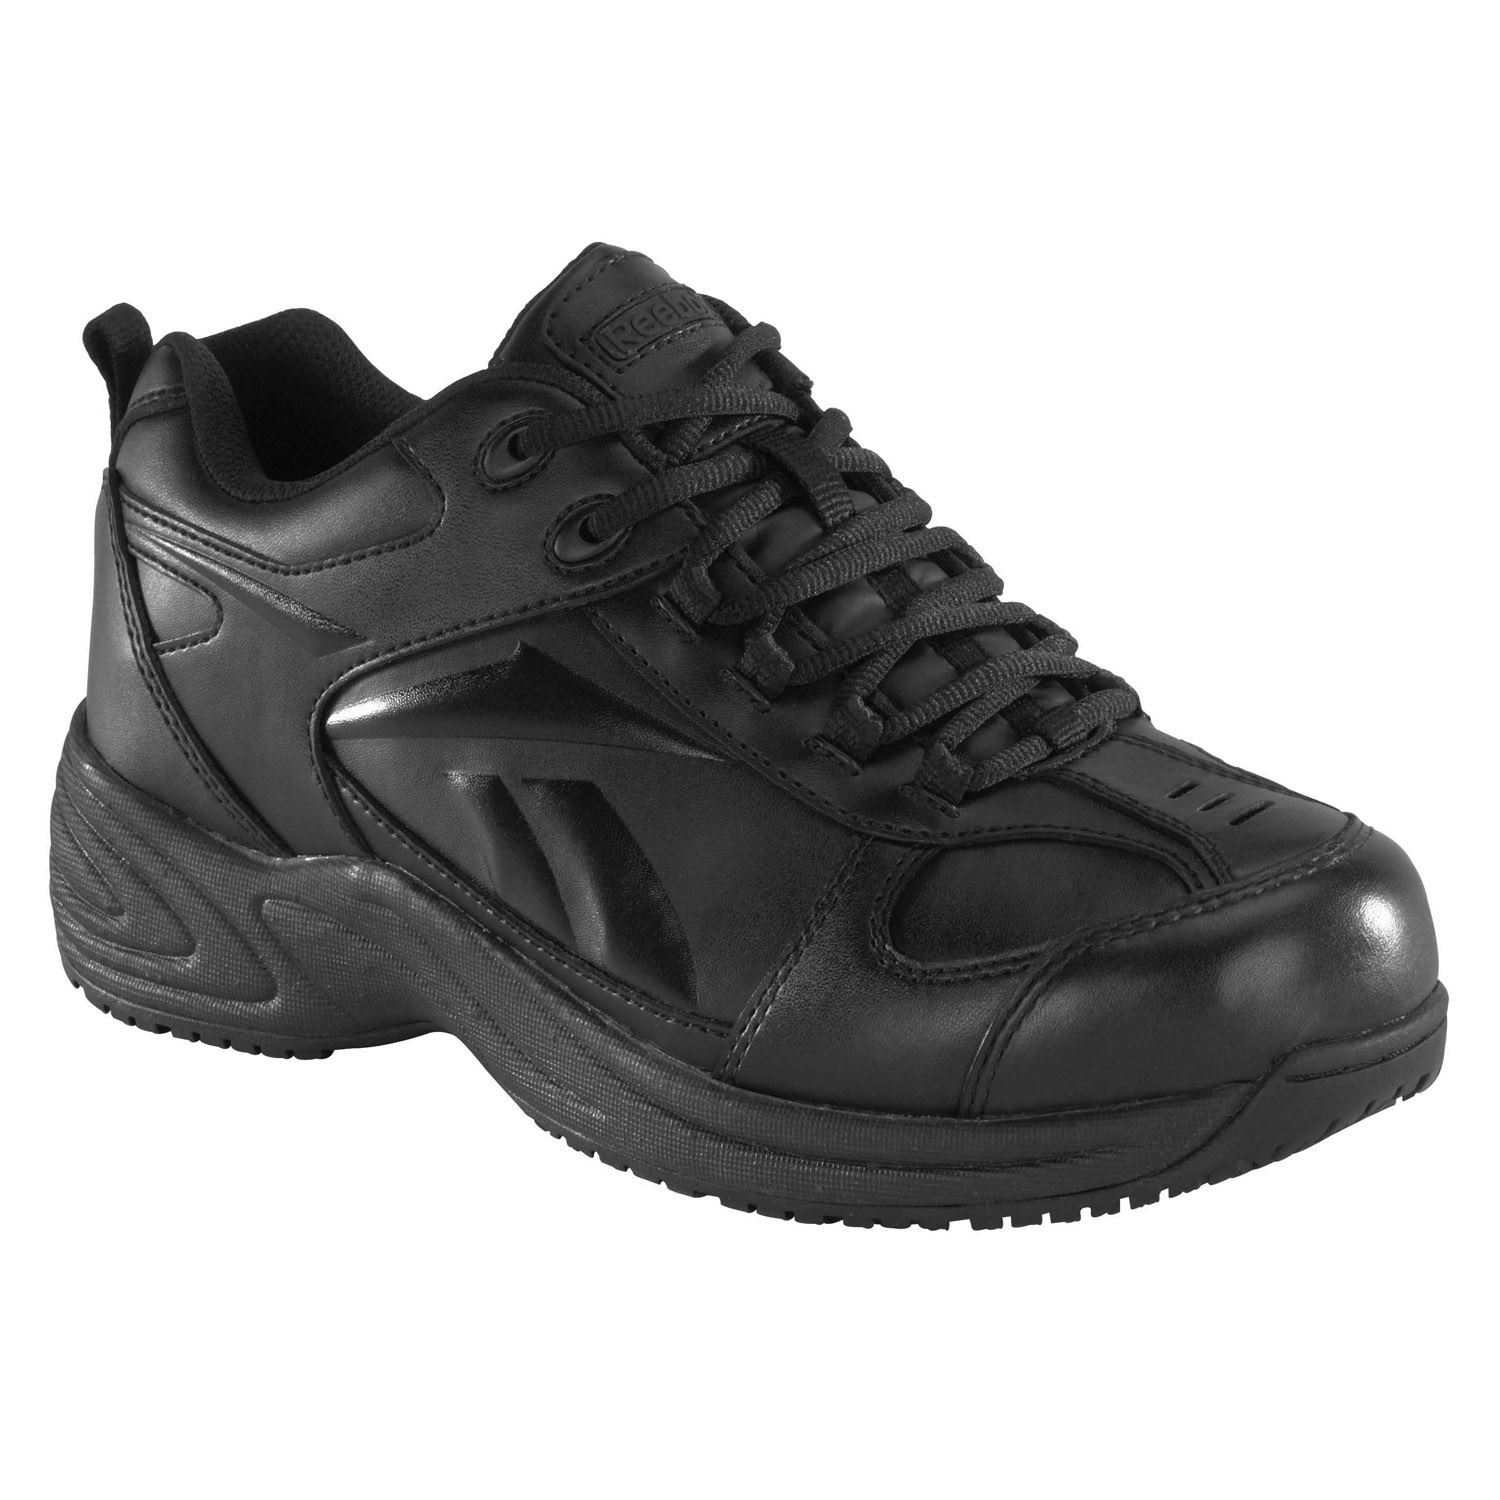 Reebok Women's Athletic Oxford Shoes